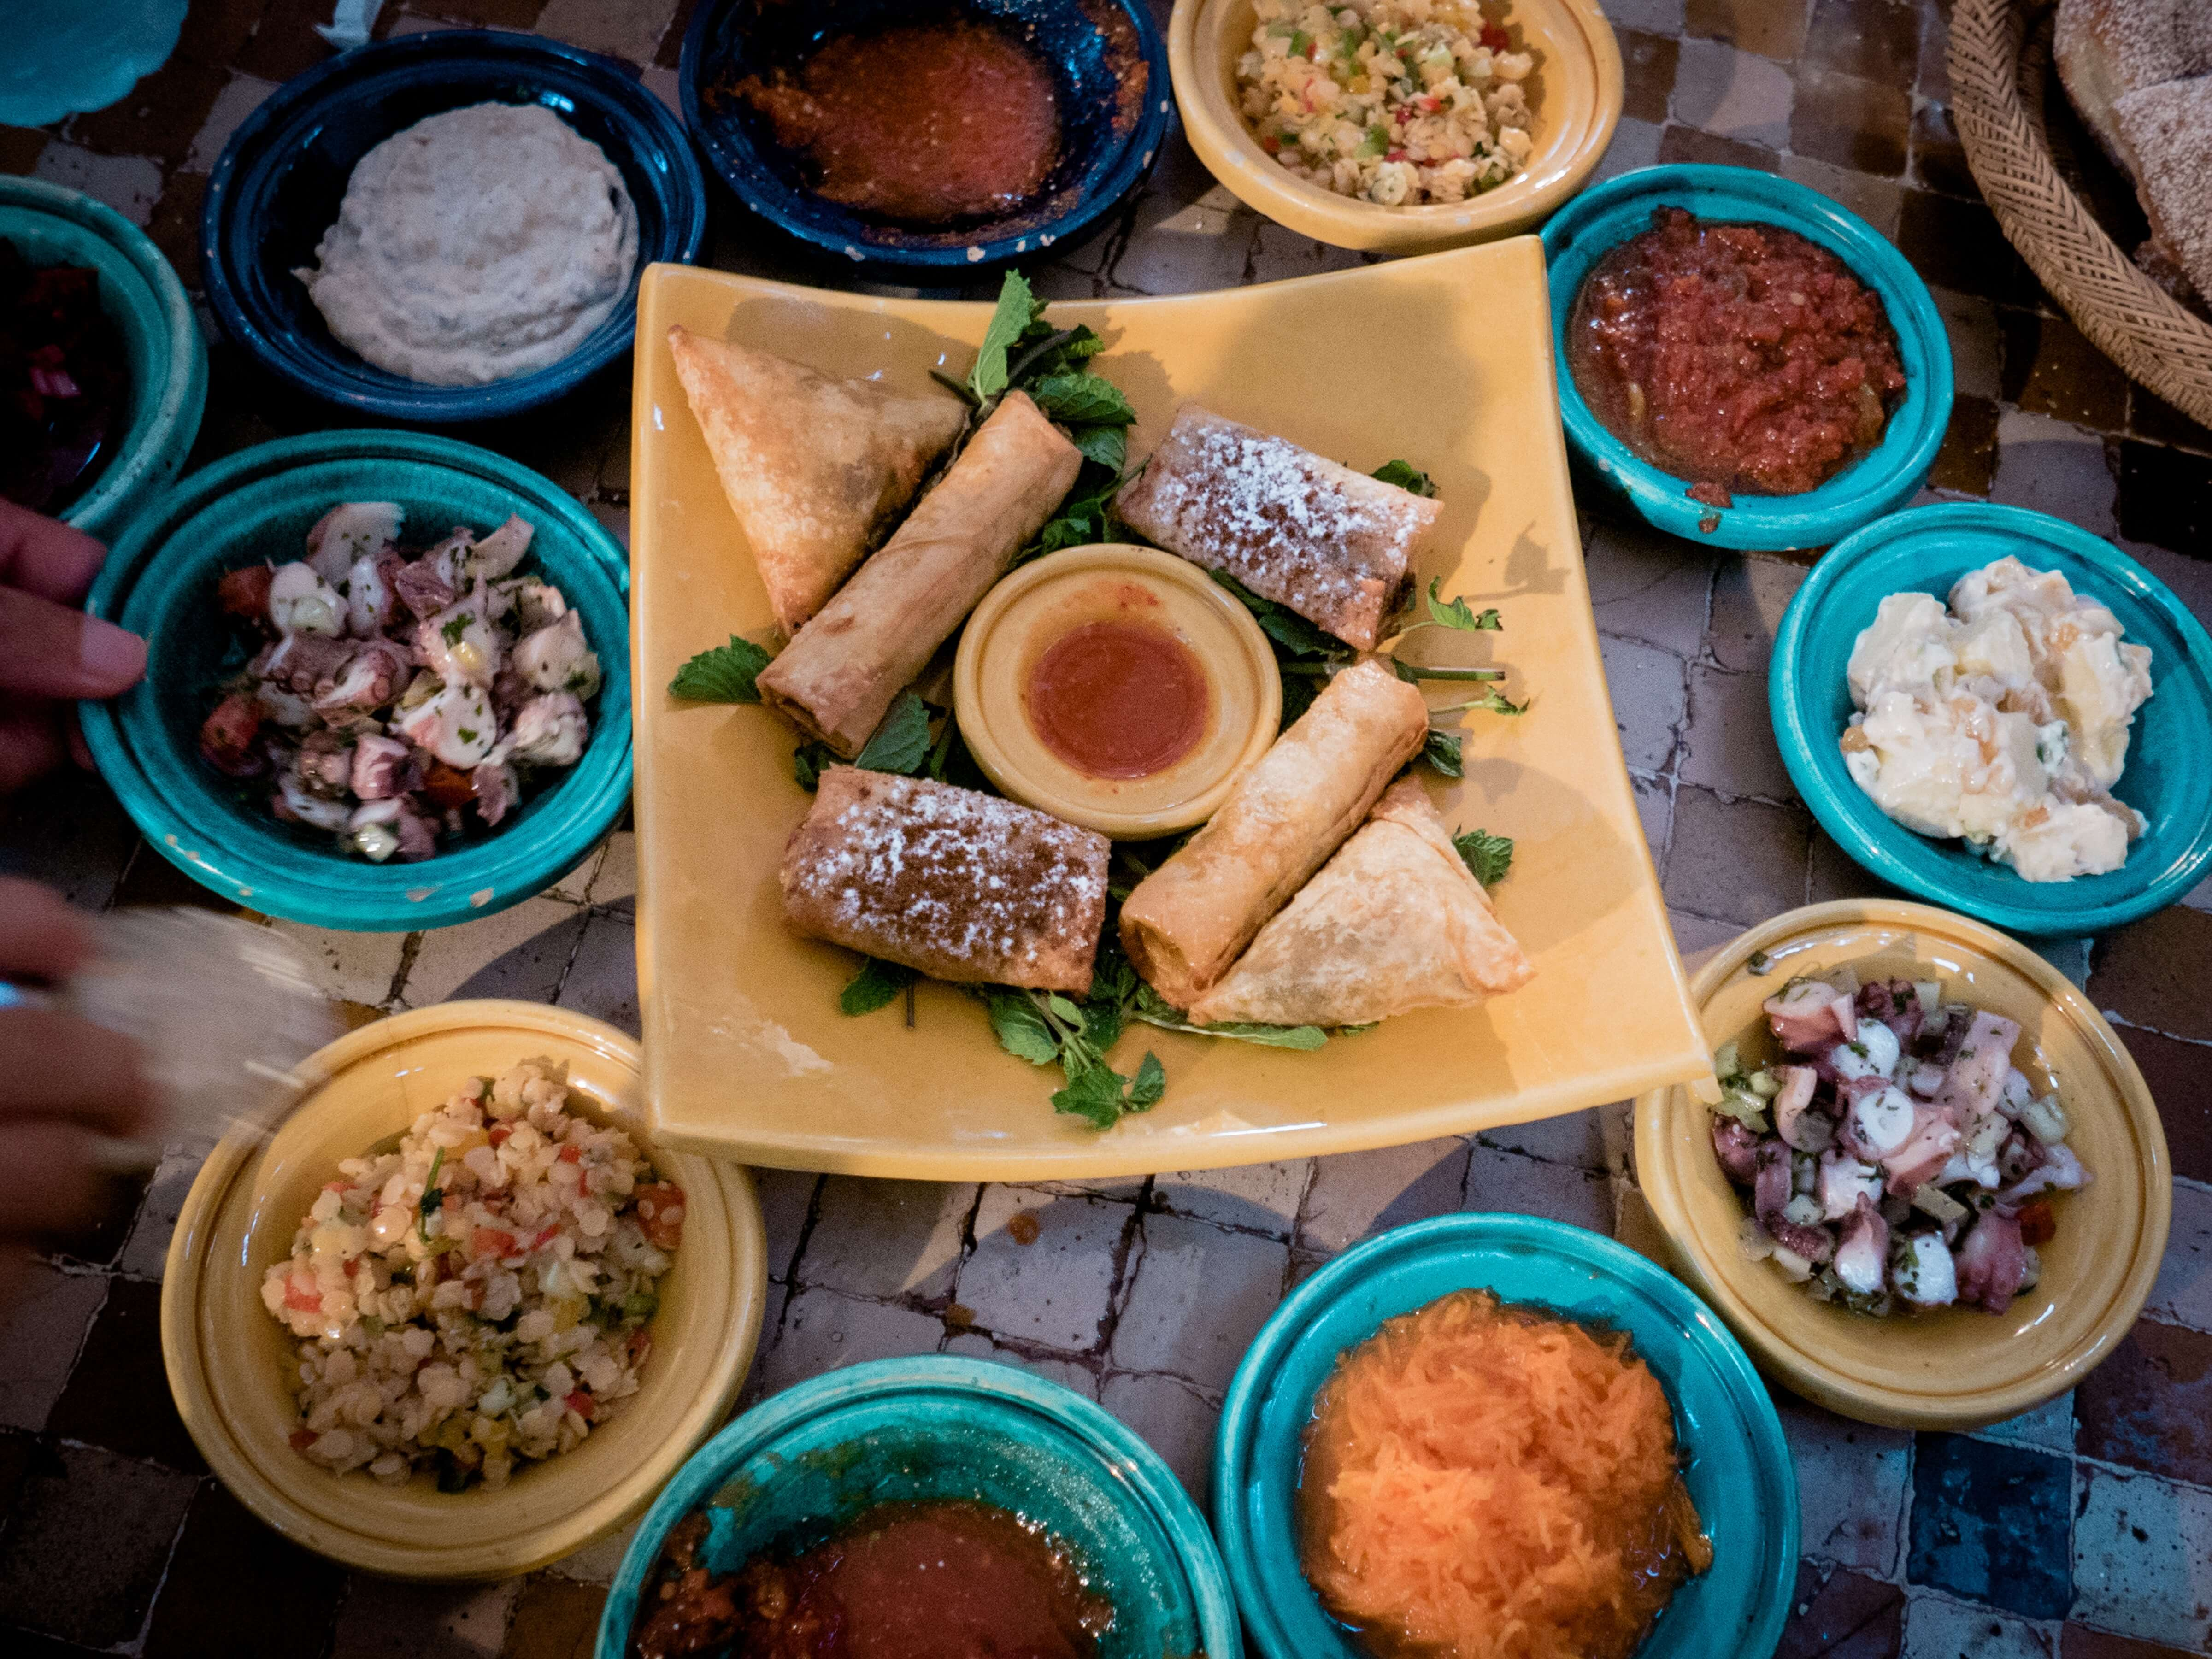 Arabic mezze - safety tips with food and kids in the Middle East